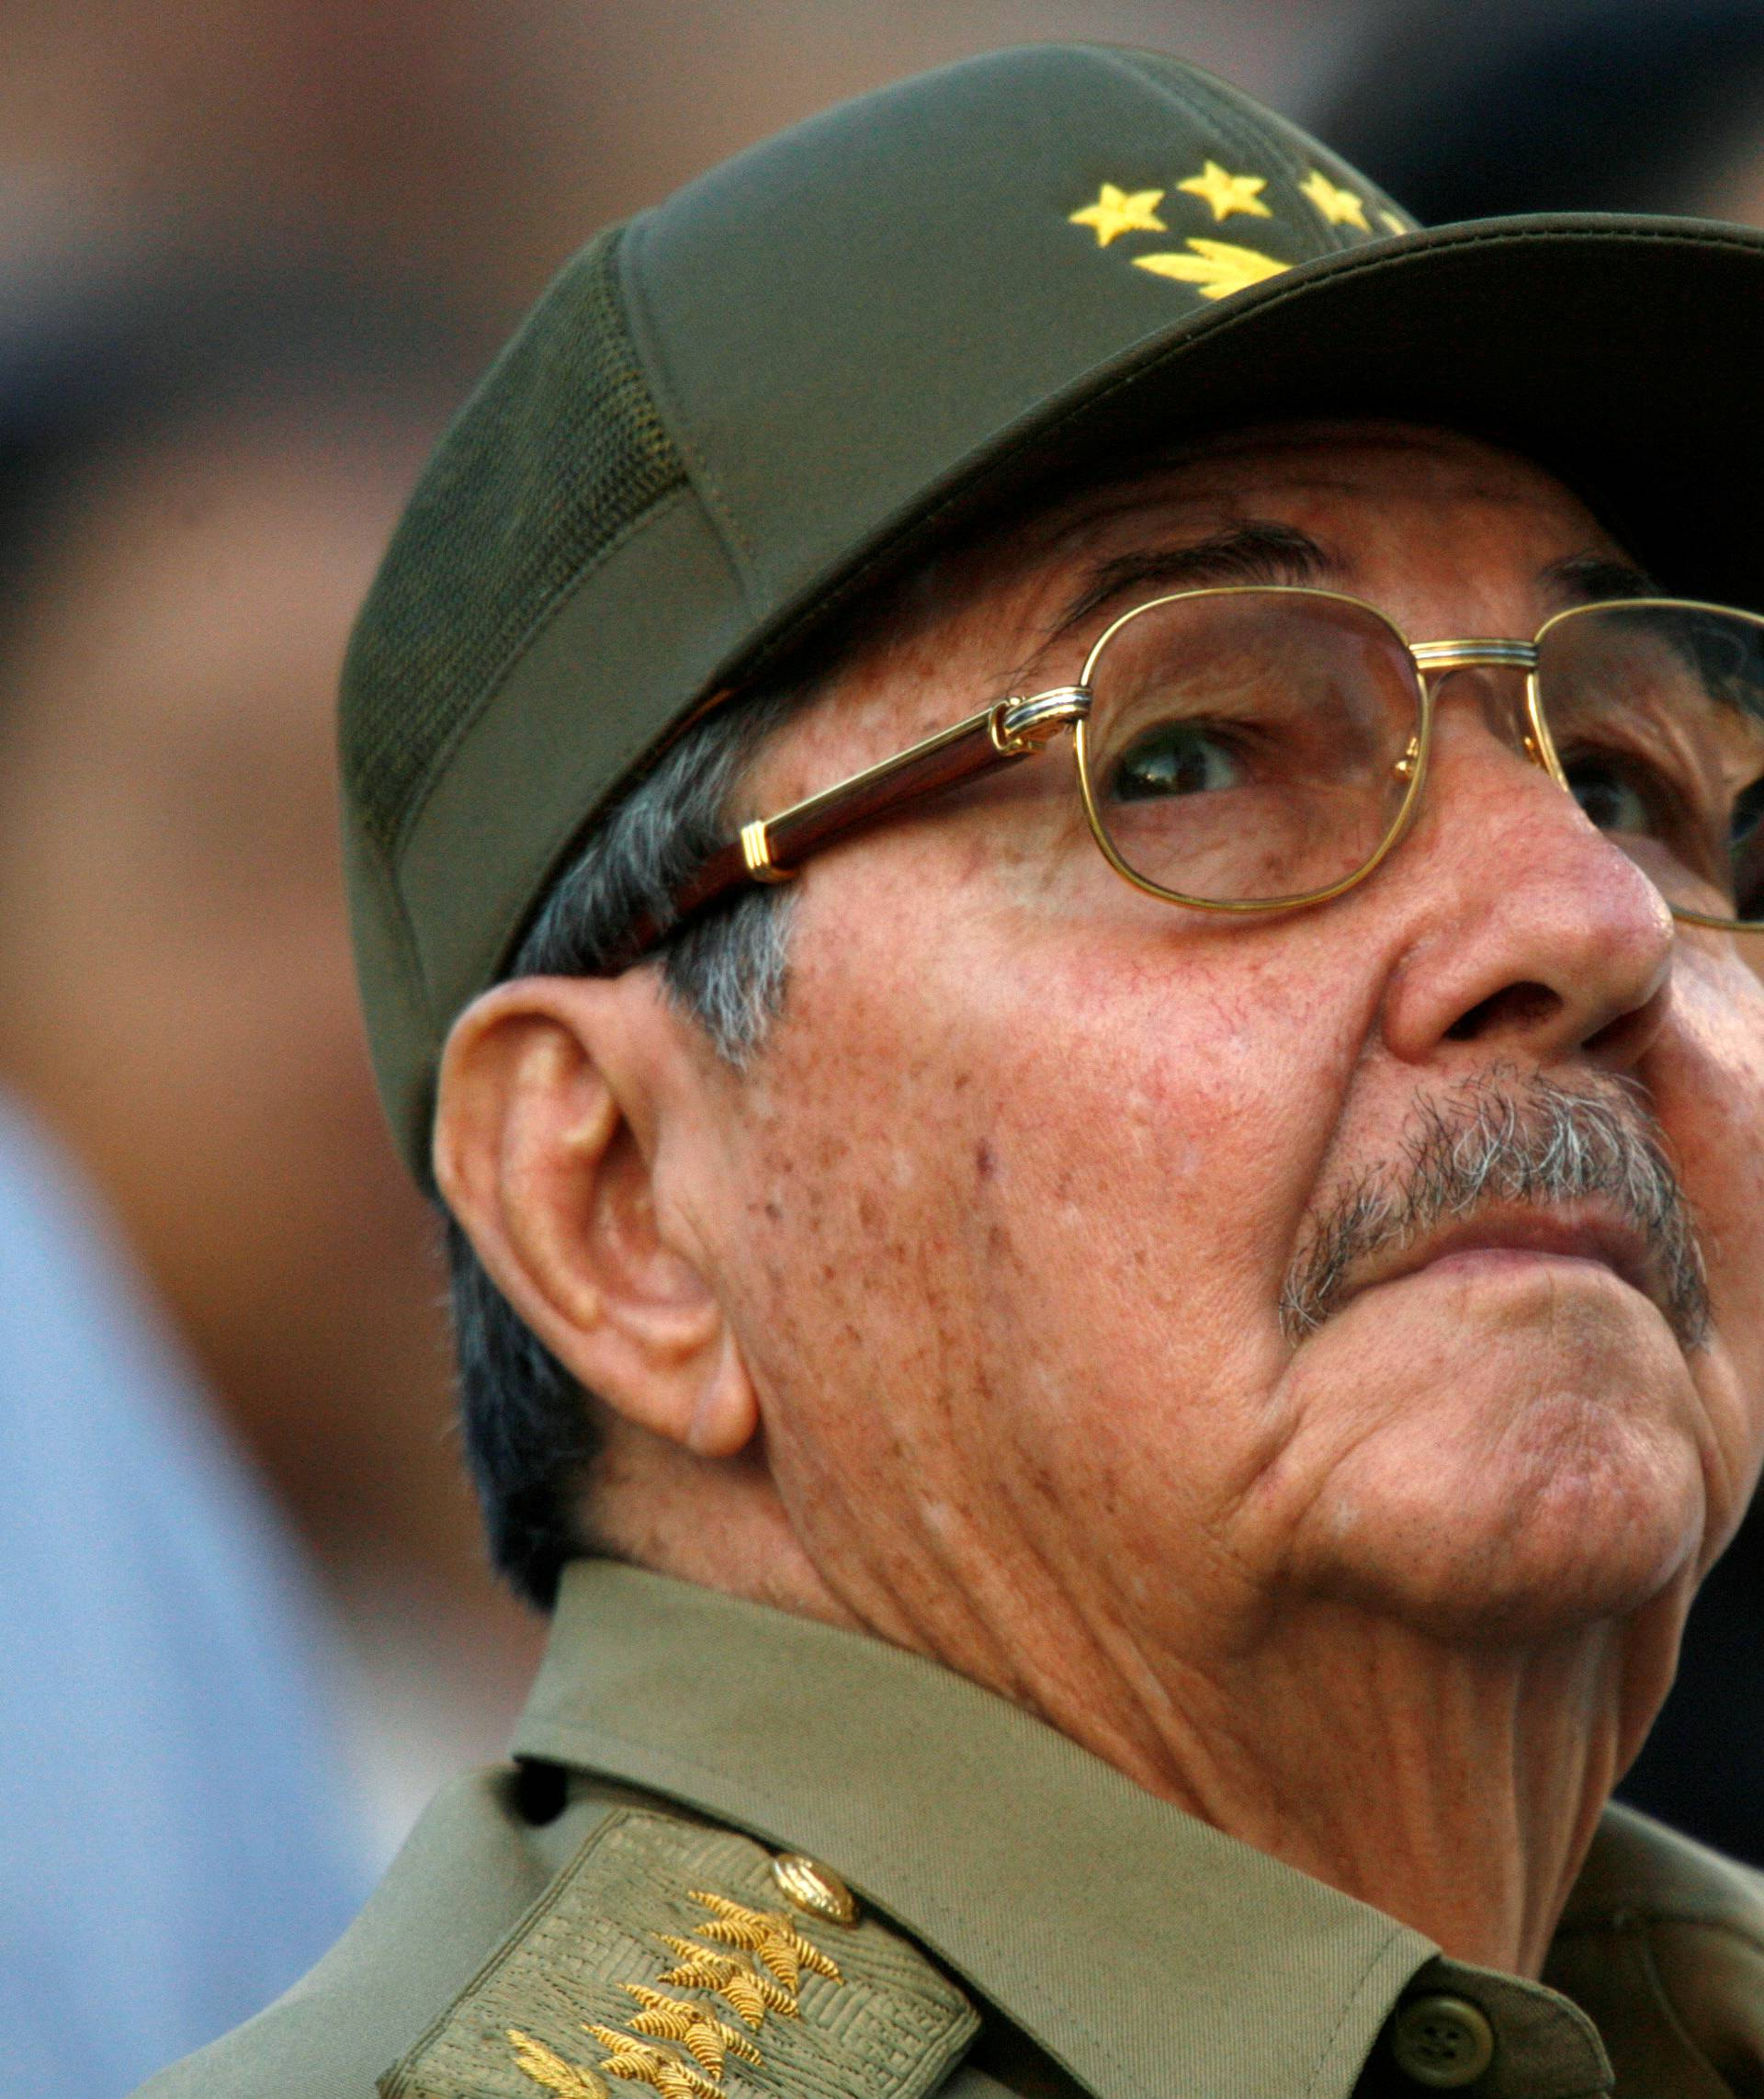 FILE PHOTO - Raul Castro looks up during an event in celebration of the 50th anniversary of the assault of the presidential palace during the regime of Fulgencio Batista, in Havana